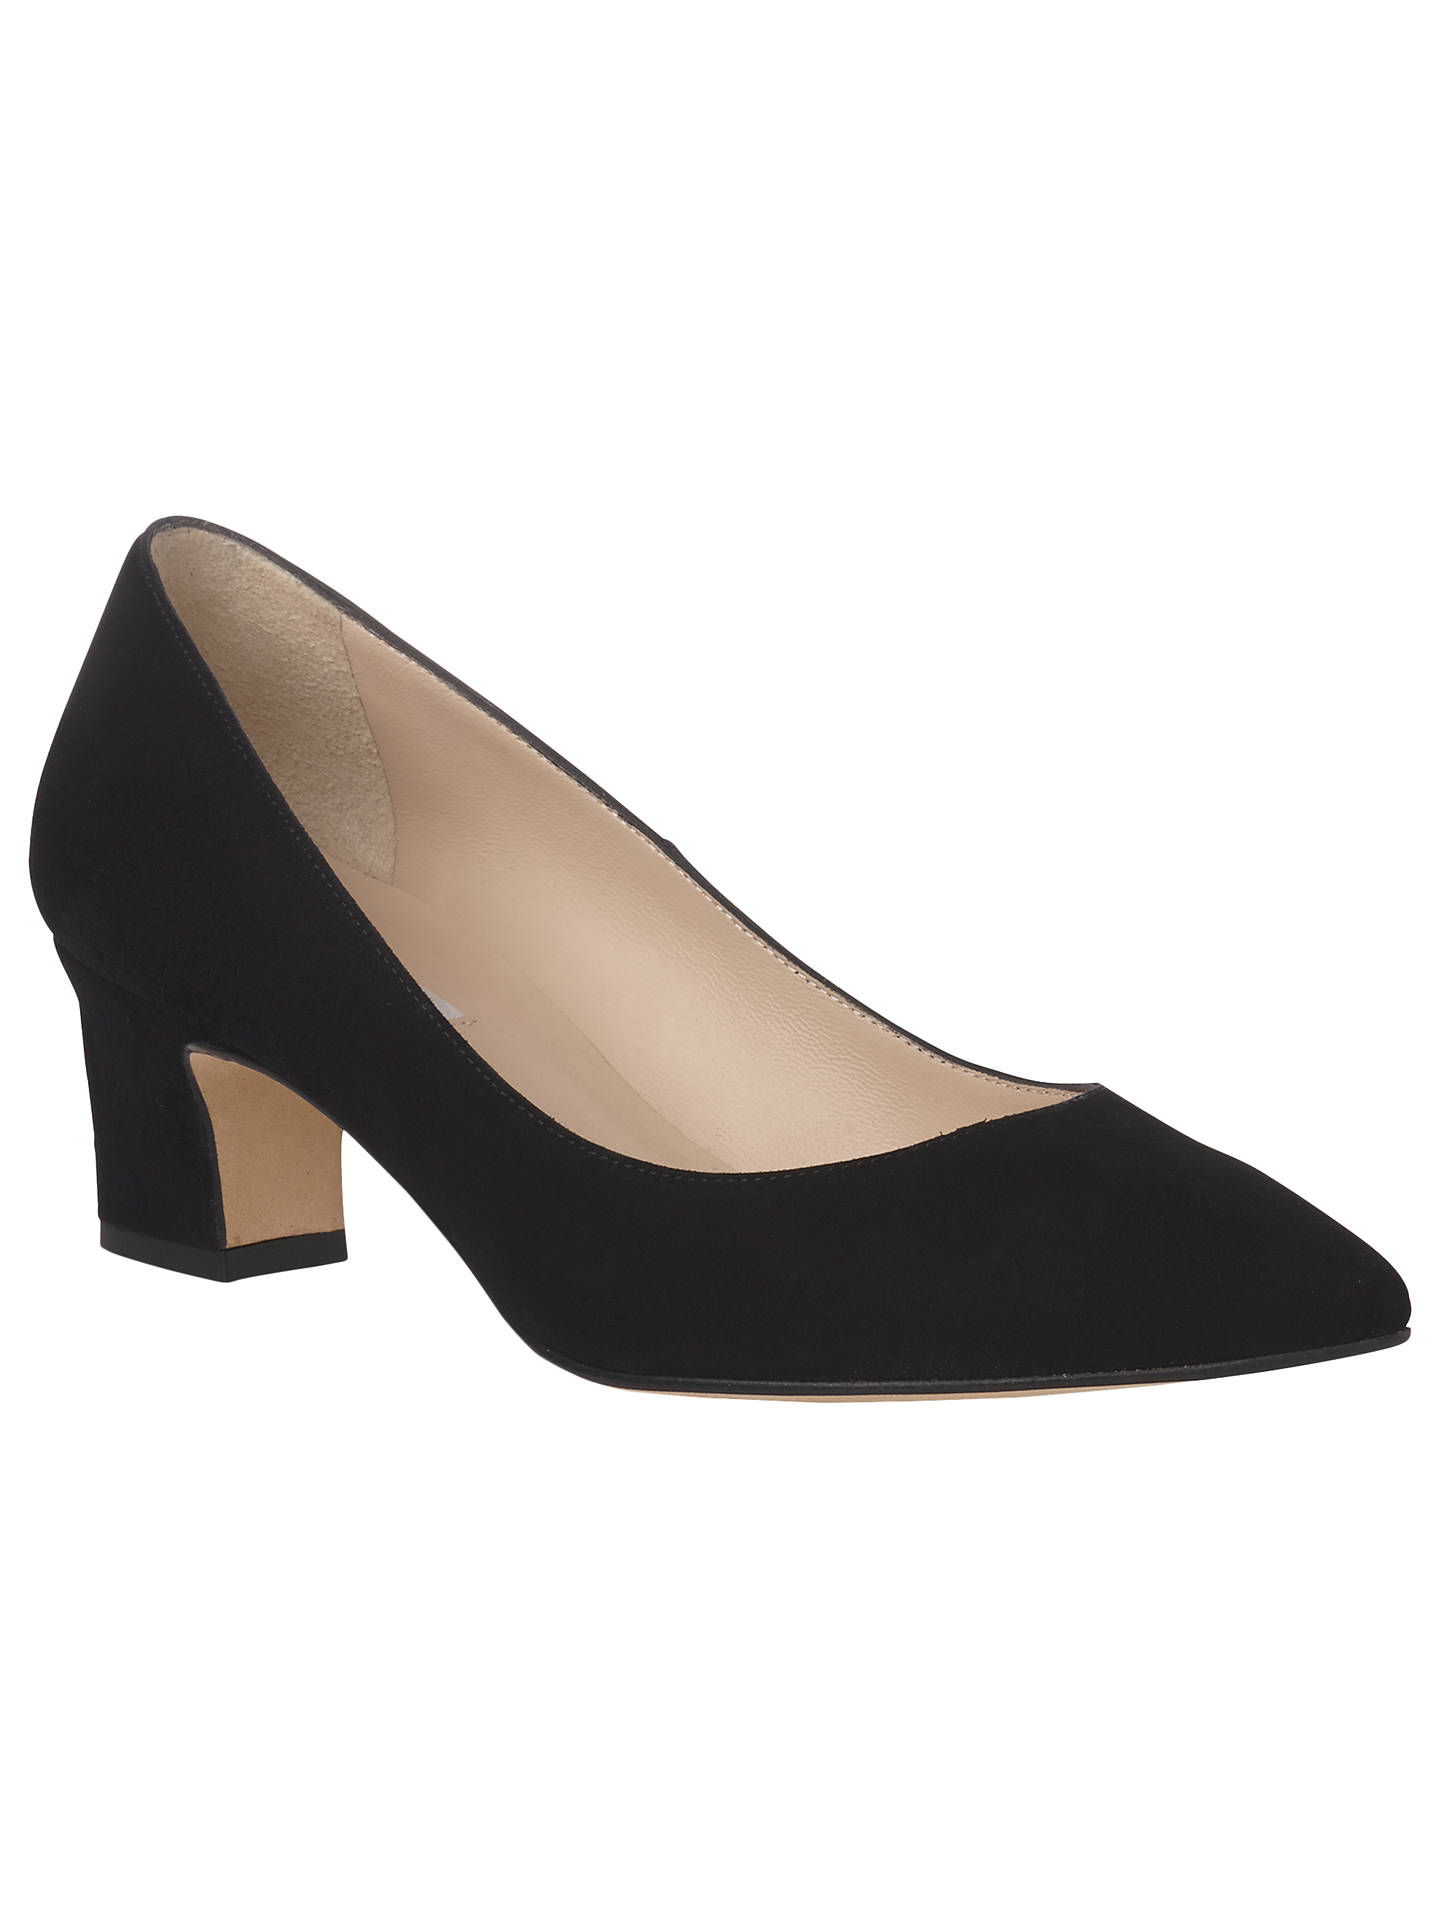 f729f70b32d7 Buy L.K. Bennett Annabelle Block Heeled Court Shoes